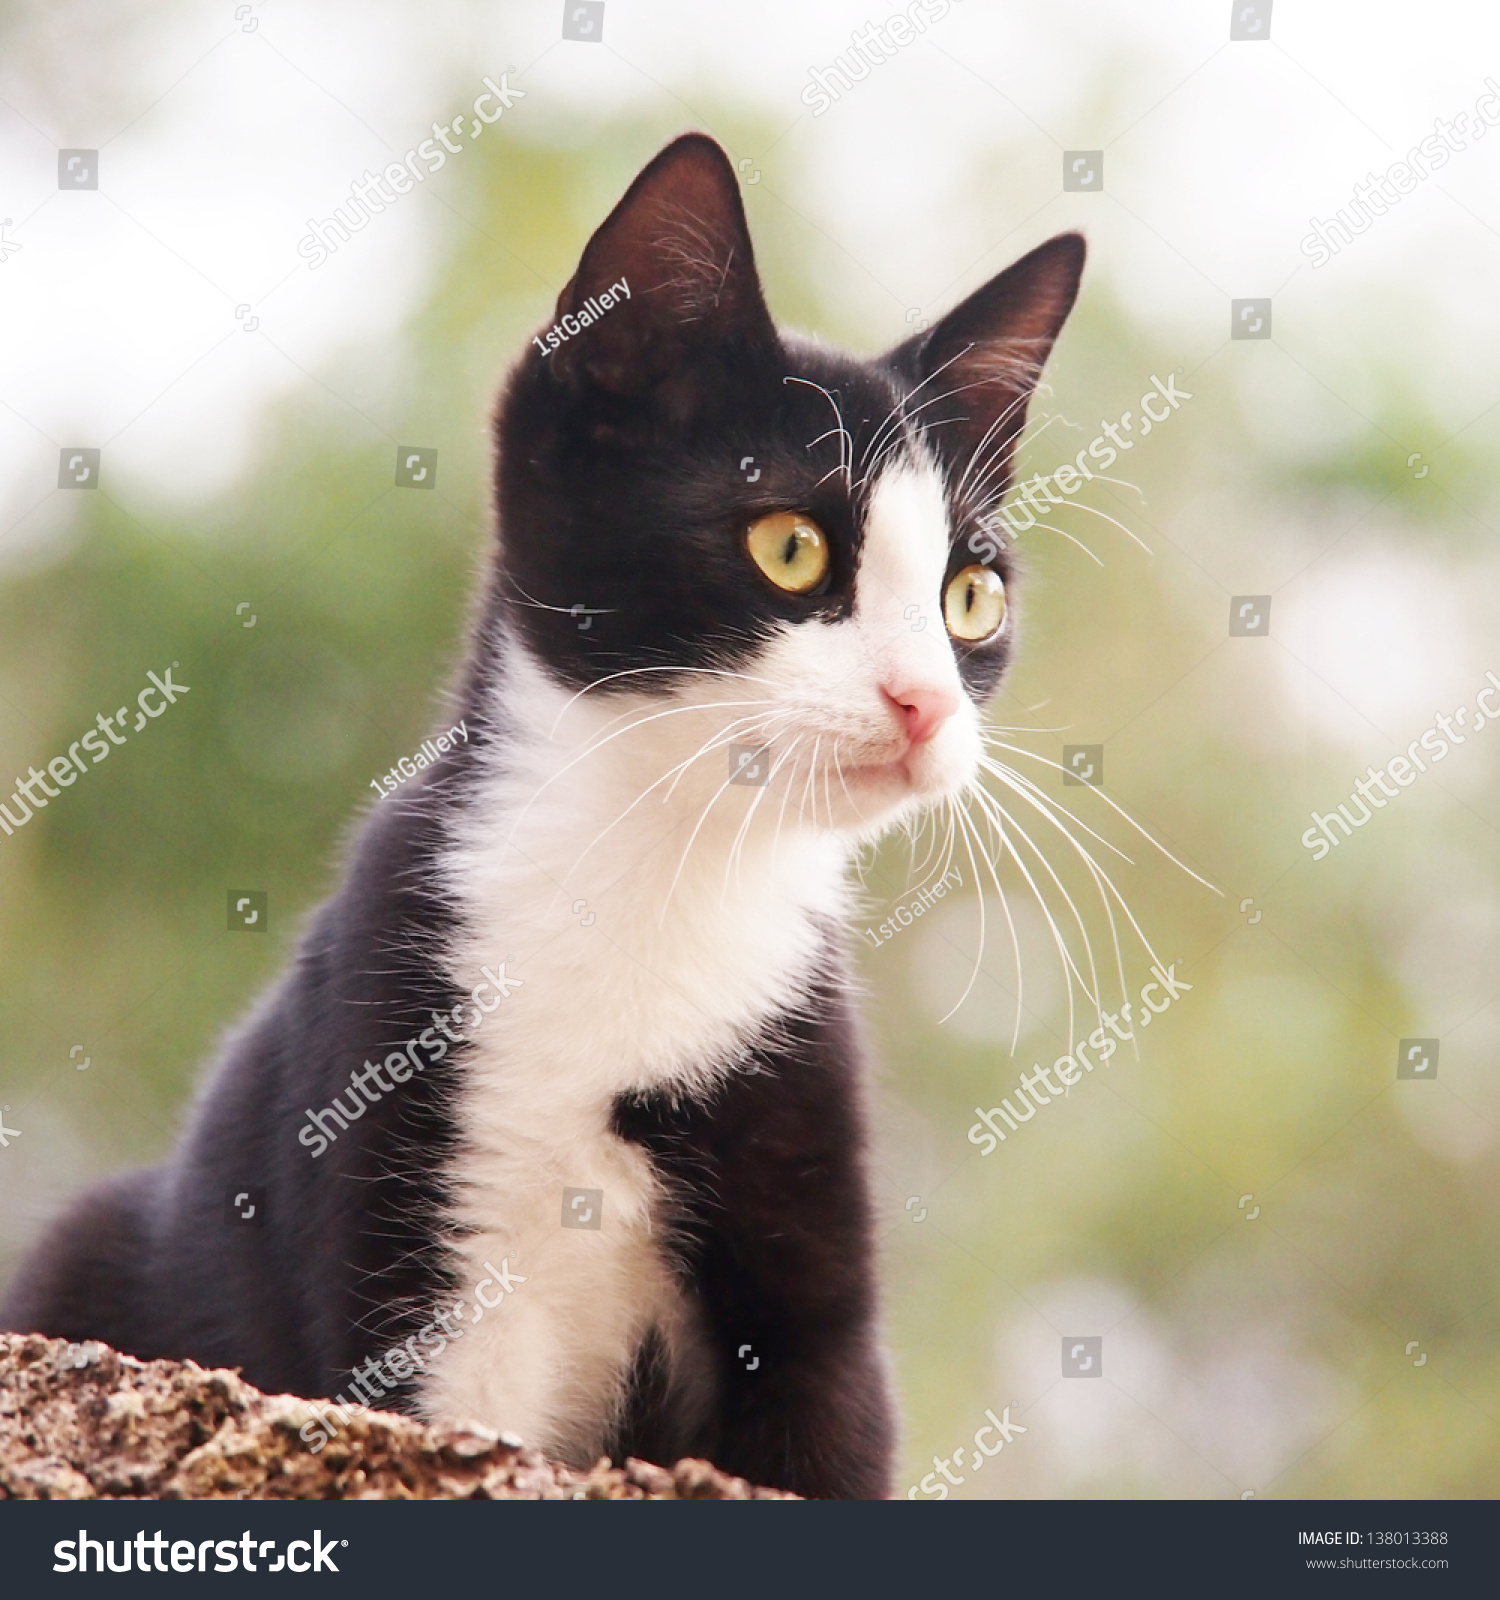 Young Cat Black White 25 Square Stock Photo (Edit Now) 138013388 ...